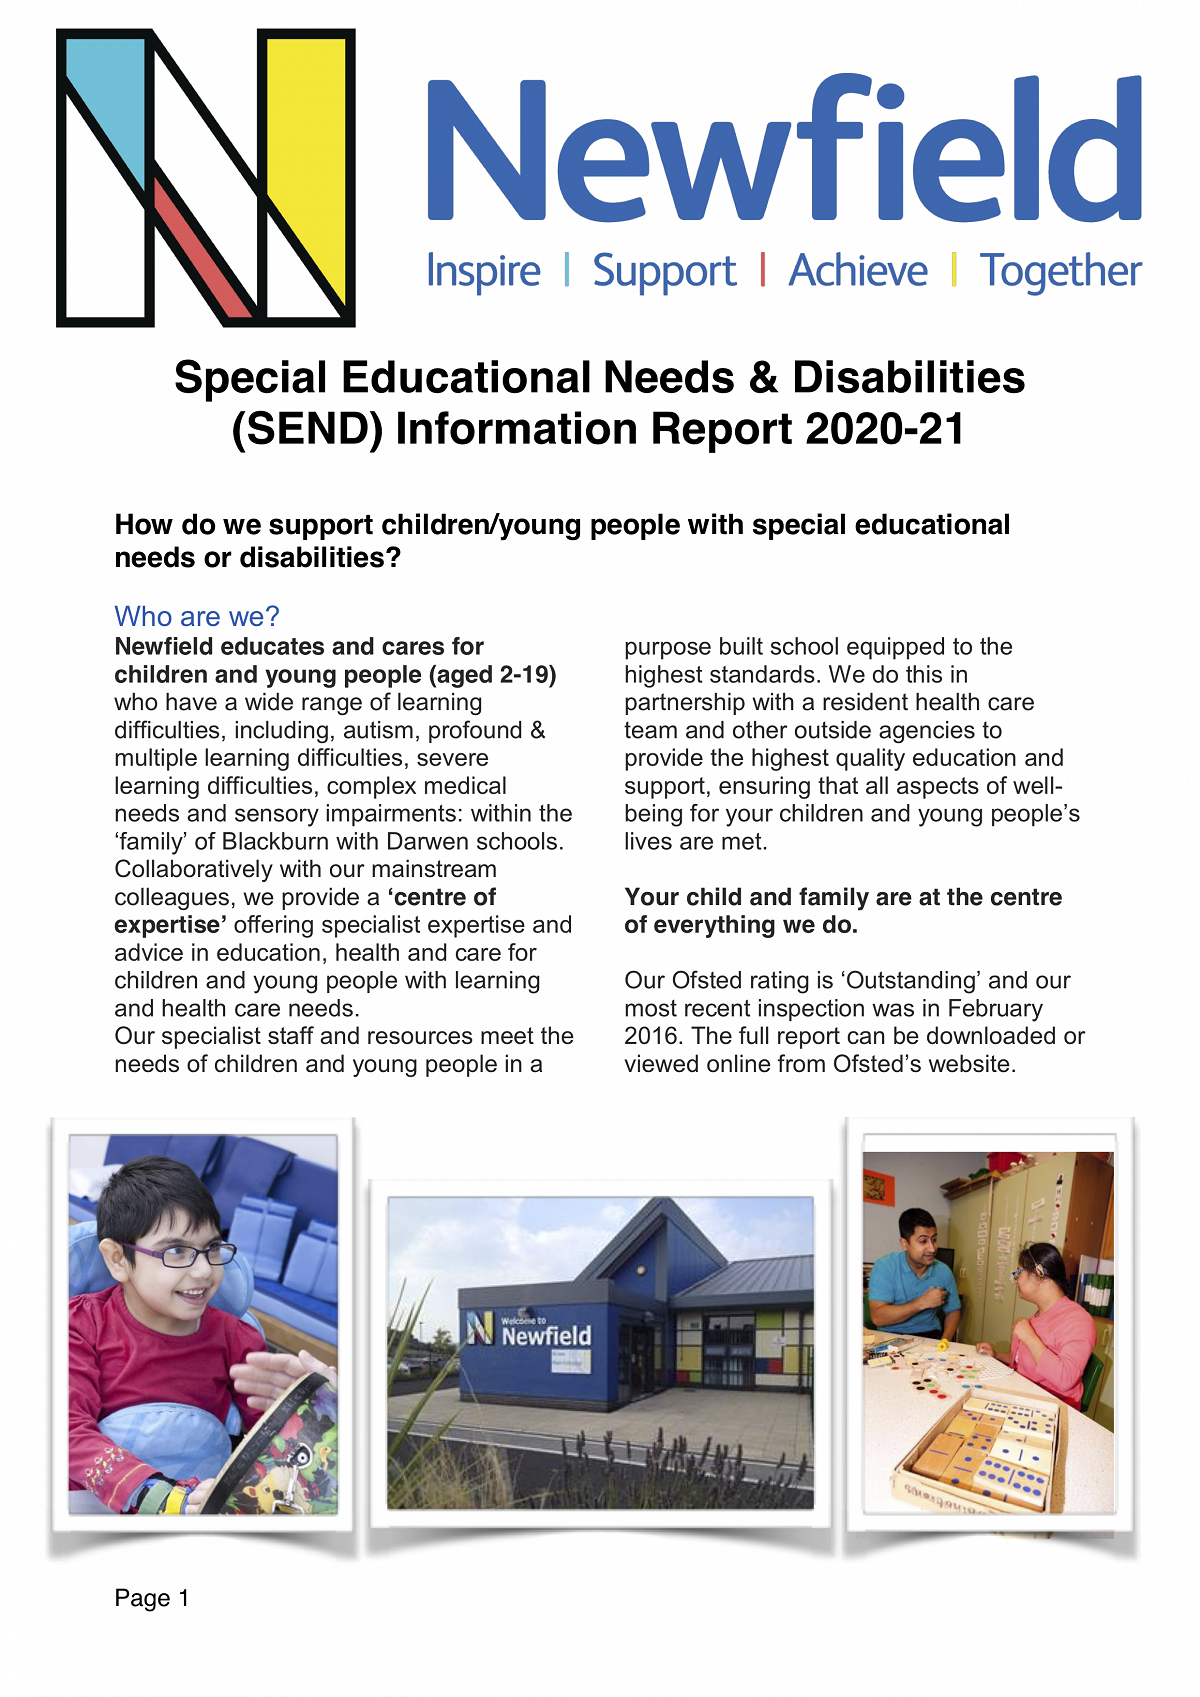 Newfield SEND Information Report 2020 - 21